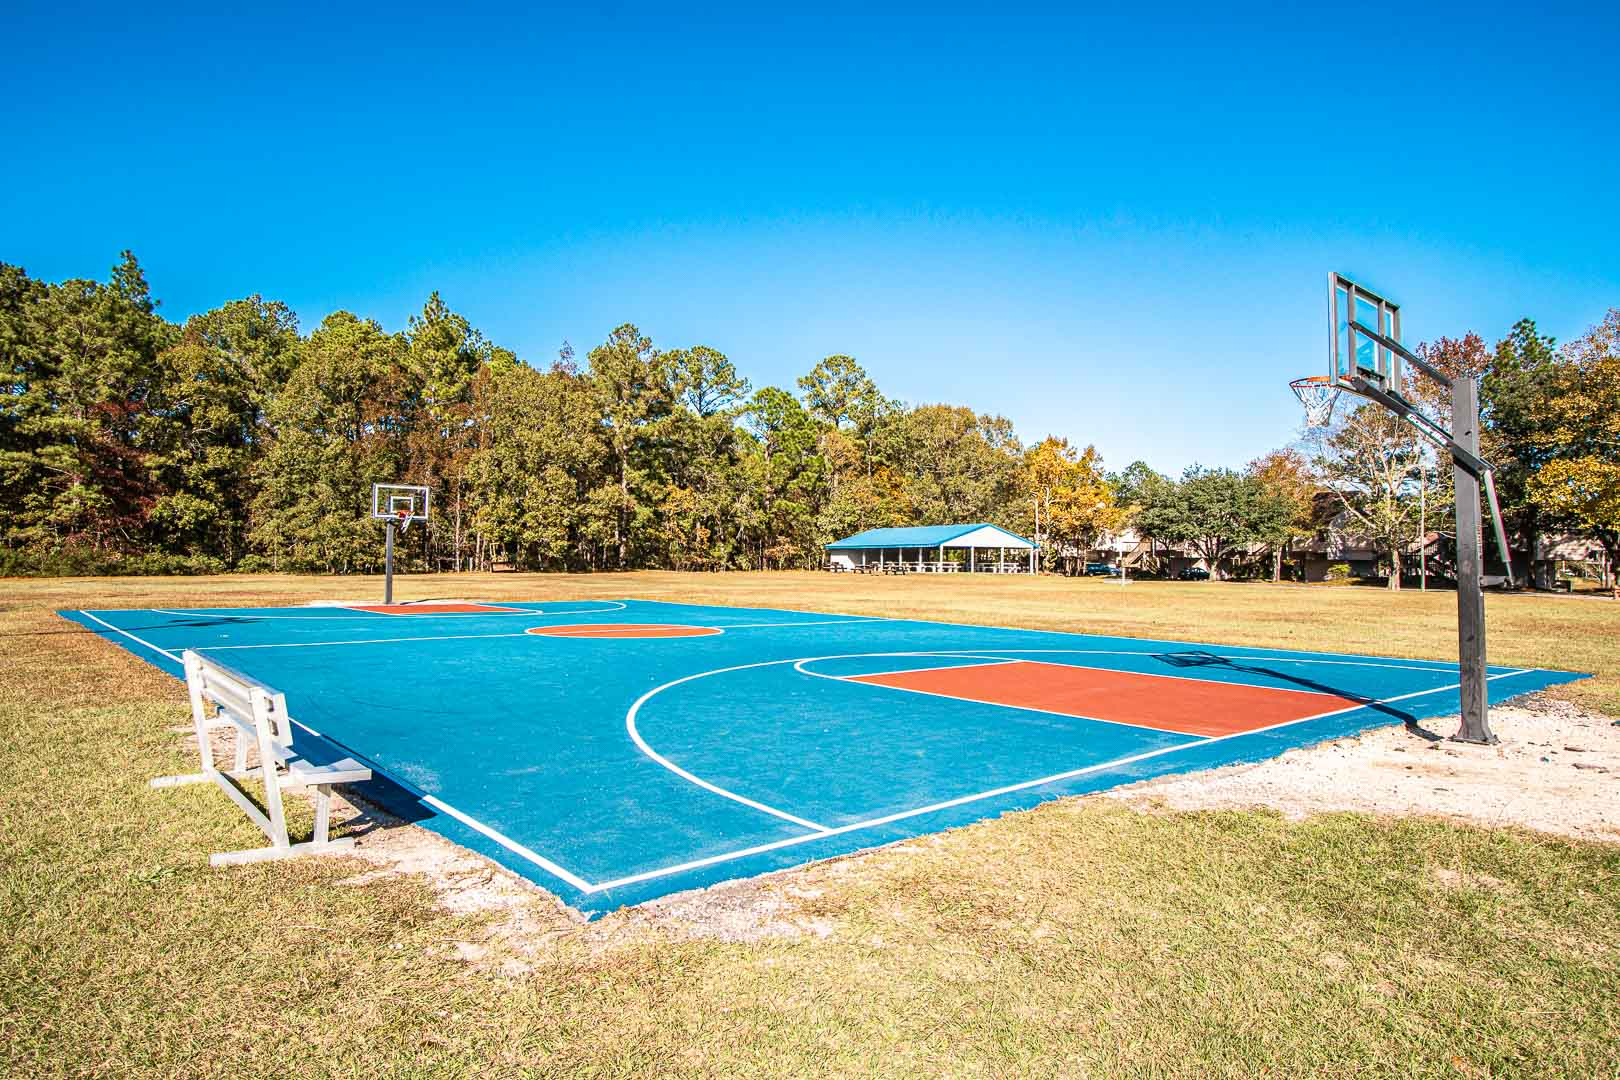 Full size outdoor basketball courts at VRI's Sandcastle Cove in New Bern, North Carolina.